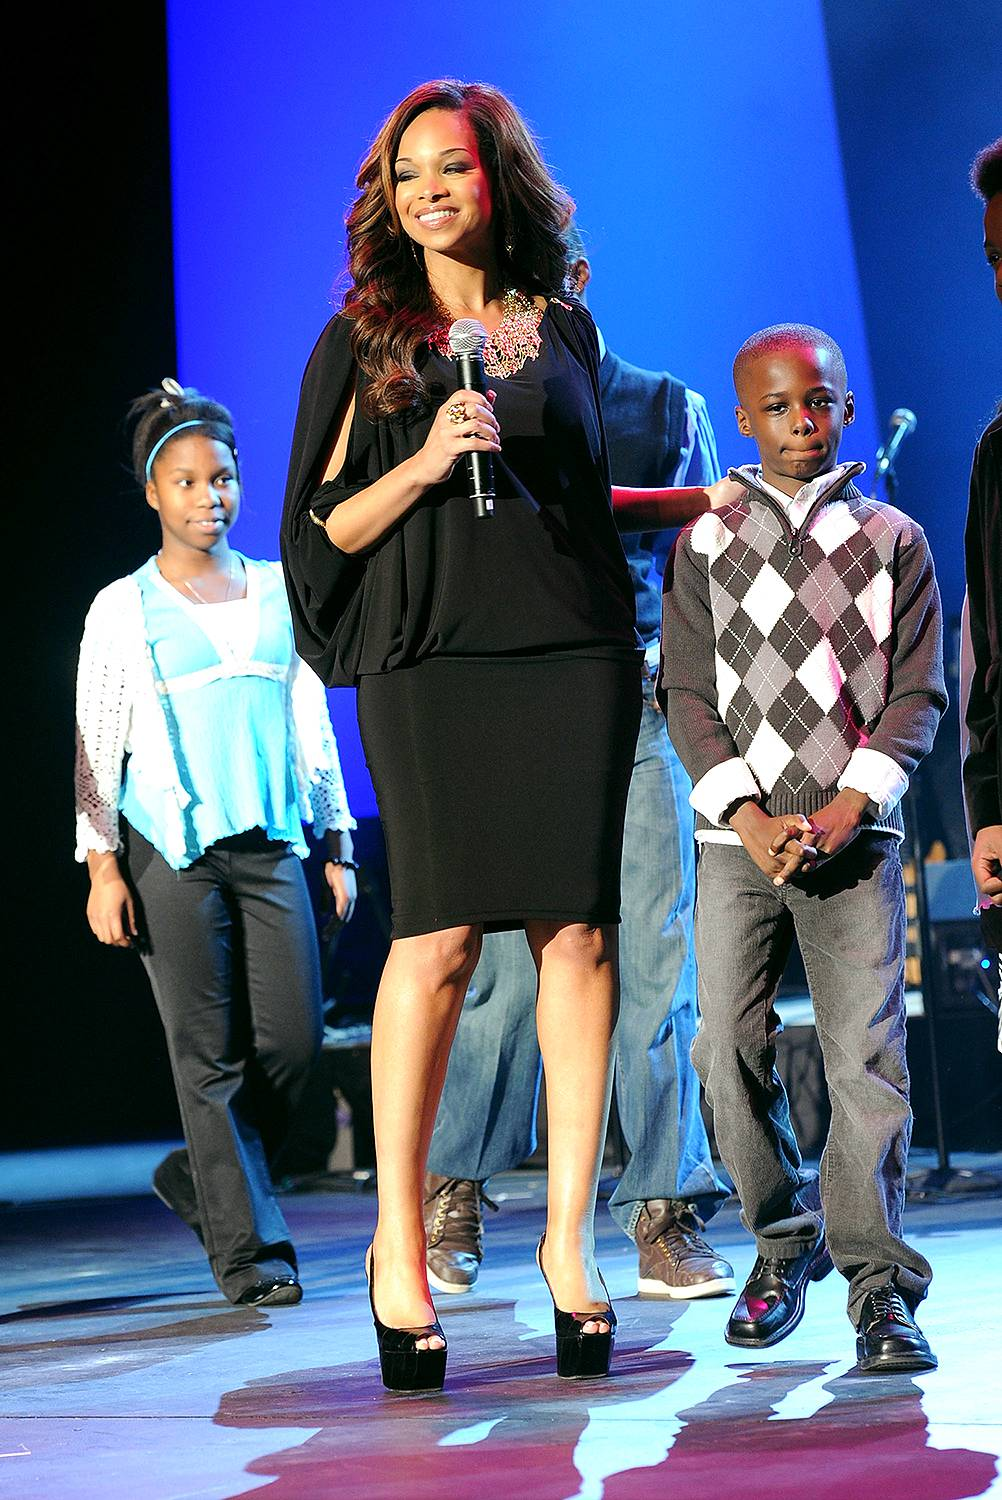 Love Like Christ - Pat Smith and her children take the stage during the Super Bowl Gospel Celebration 2011 at Music Hall At Fair Park in Dallas.(Photo: Rick Diamond/Getty Images for Super Bowl Gospel Celebration 2011)